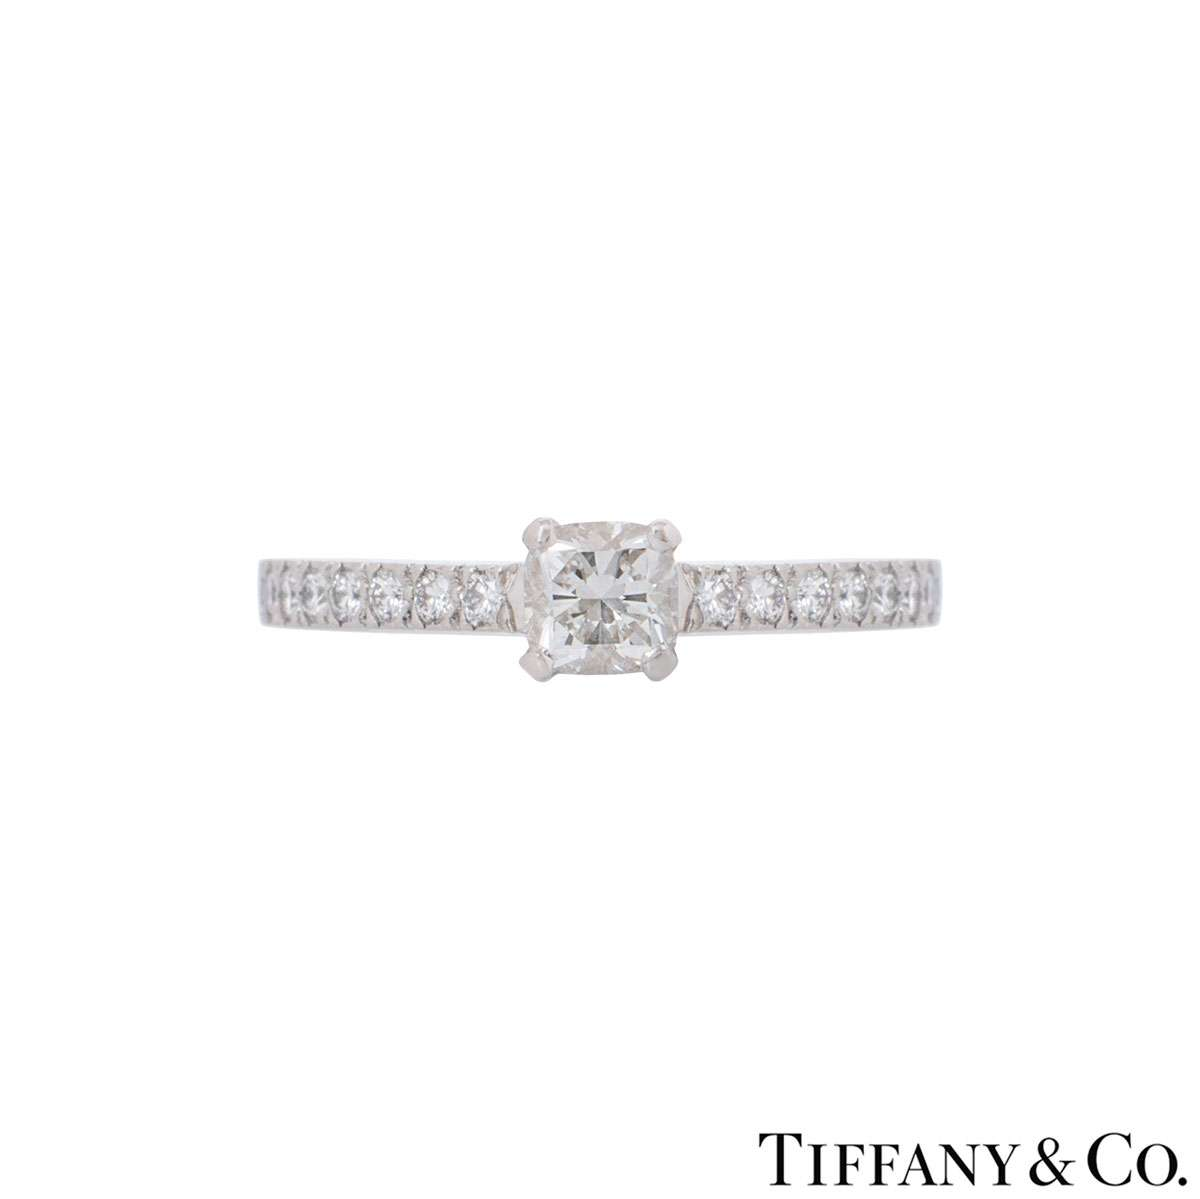 Tiffany & Co. Platinum Diamond Ring 0.33ct G/VS1